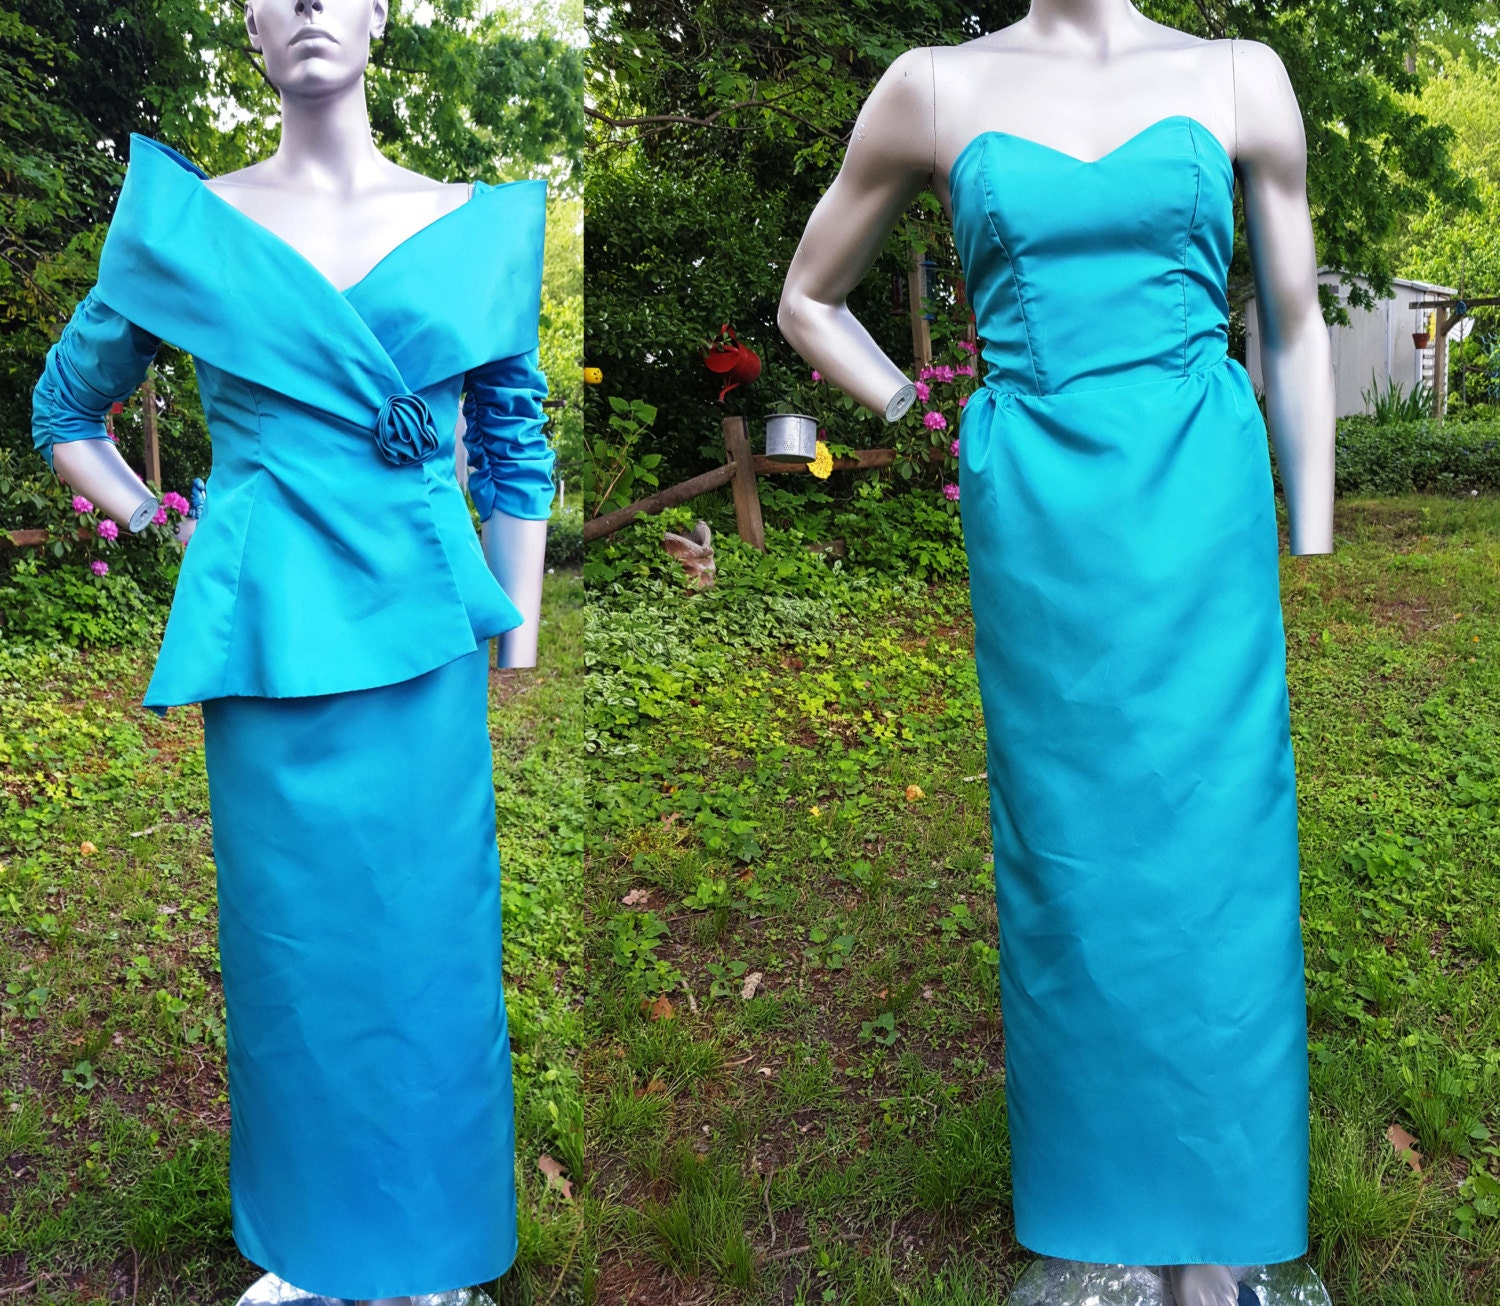 80s Prom Dress Vintage Jacket Teal Dress Teal Jacket